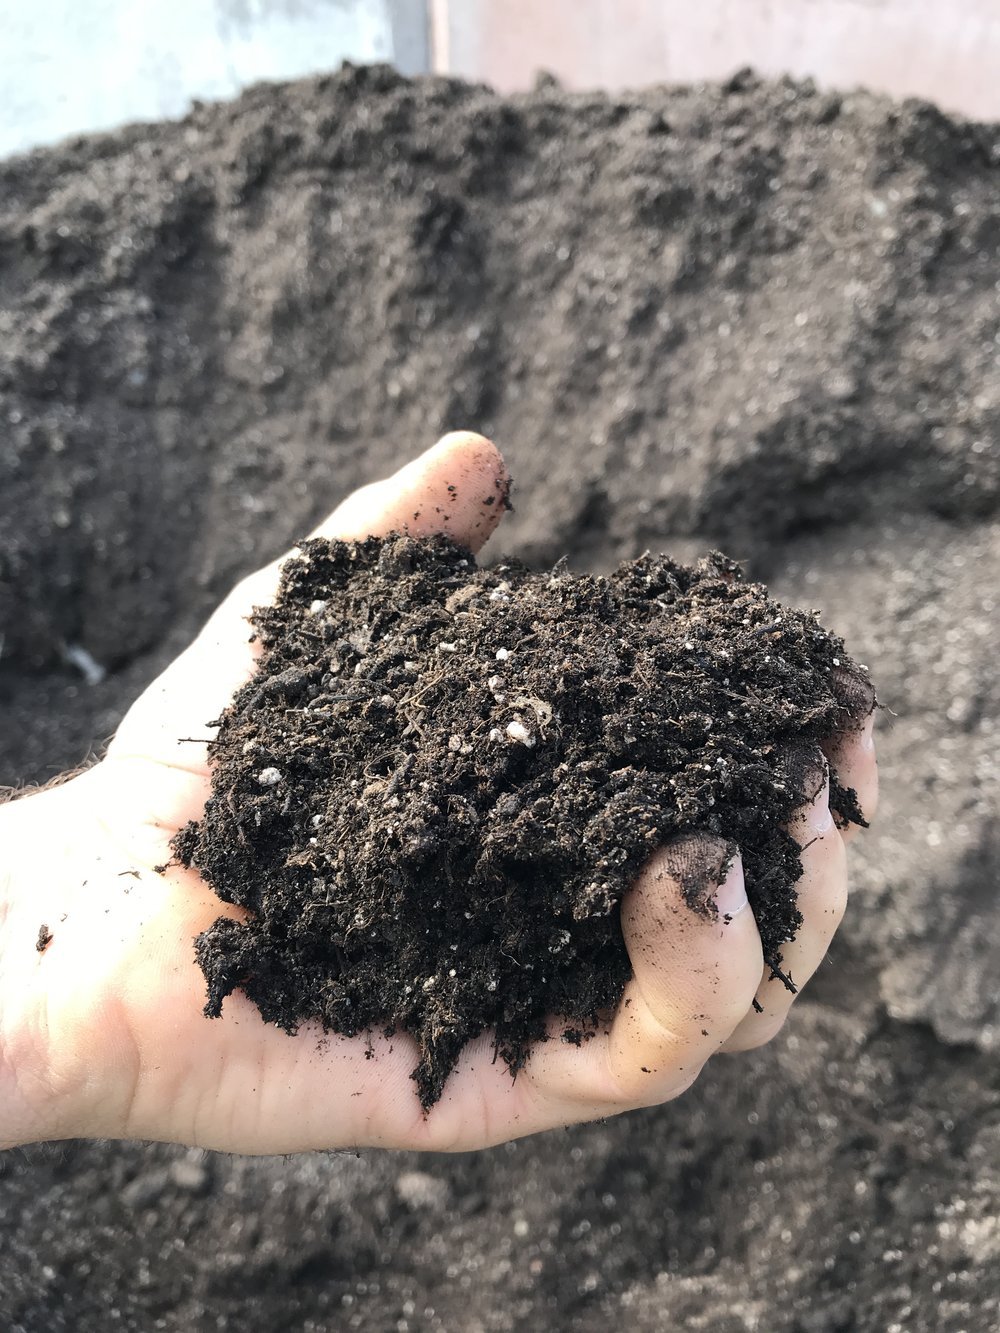 Premium Potting Mix  - This compost, peat & perlite mix is a great starter mix for seed germination, seedlings,& potted plants. It can also be added to raised beds and gardens as a high quality option.$65.00 per yard$37.00 per half yard$10.00 per pailContractor pricing available